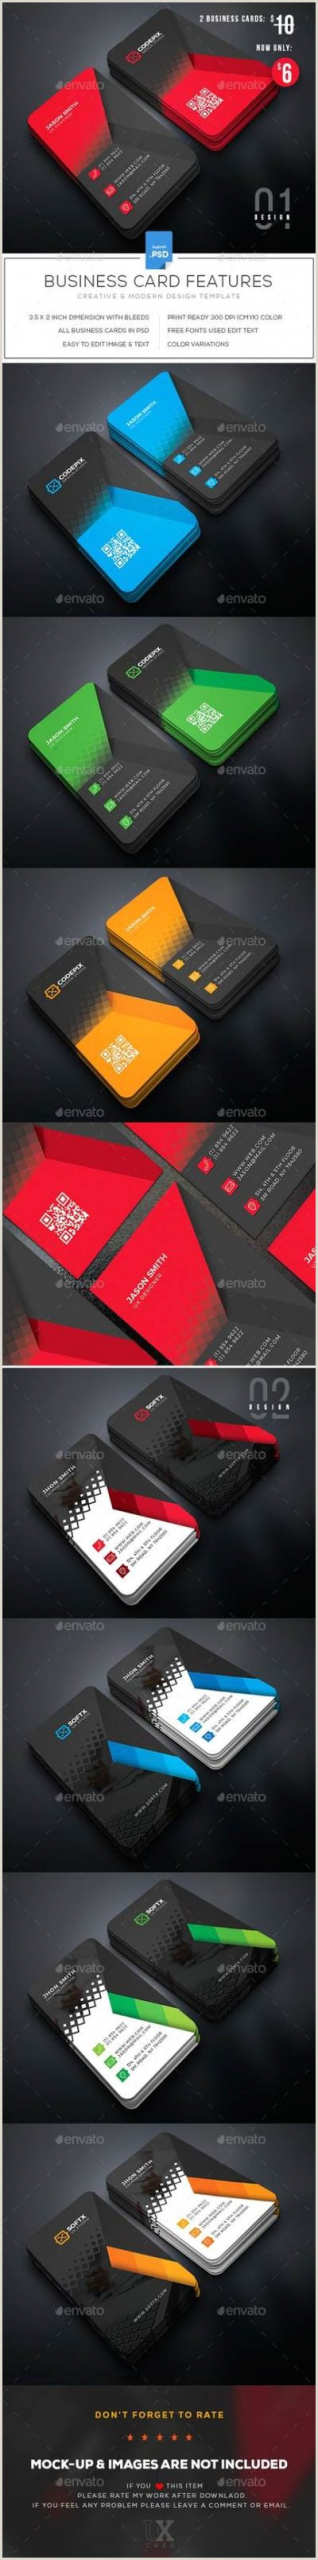 Examples Of Cleaning Business Cards Creative Modern Polygon Business Card